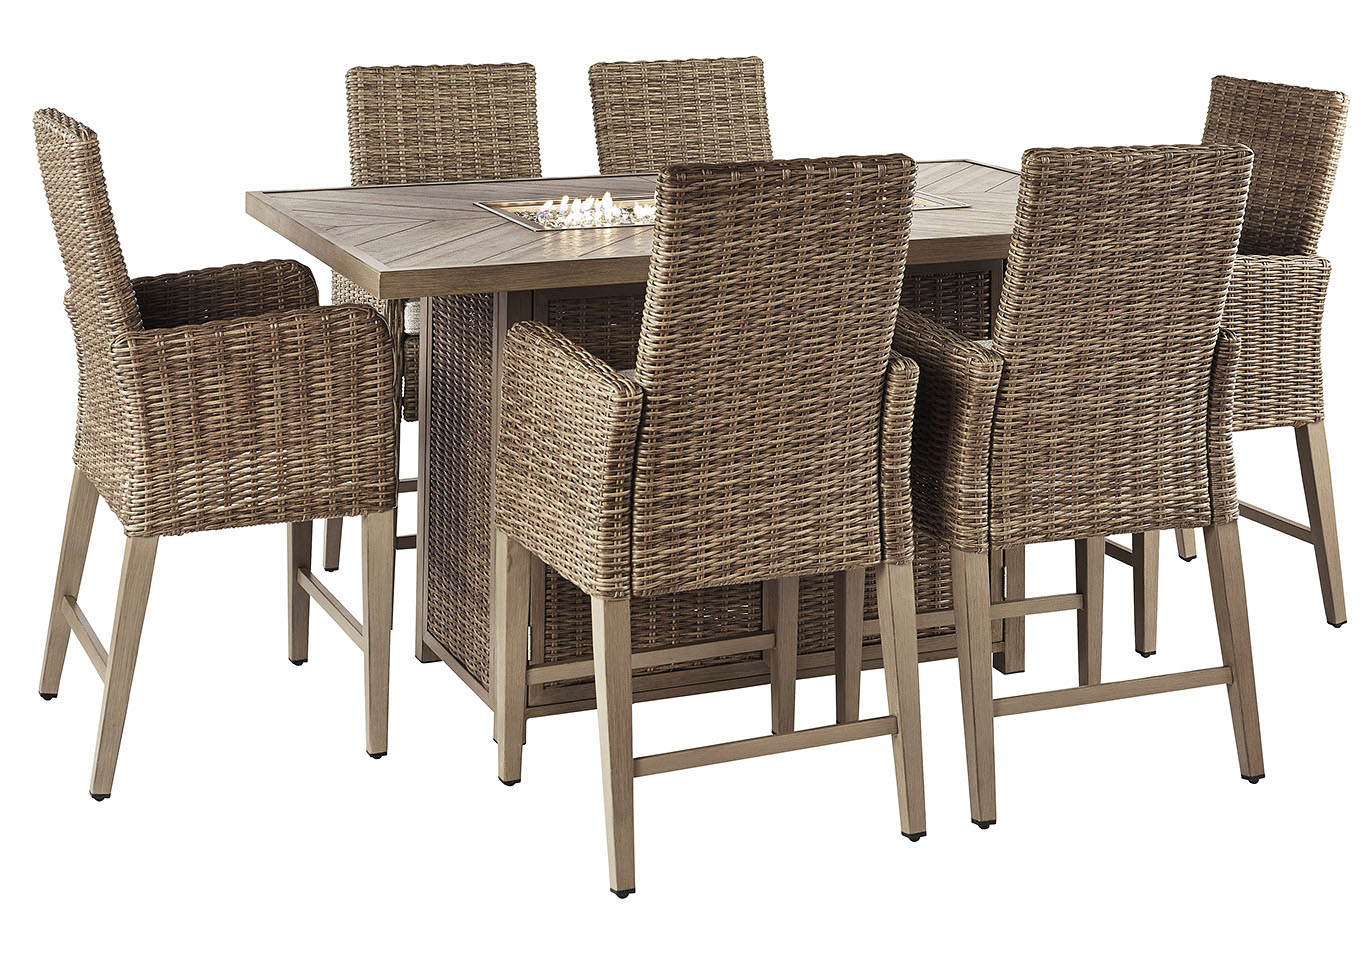 Beachcroft Beige Fire Pit Table w/6 Counter Height Chairs,Outdoor By Ashley